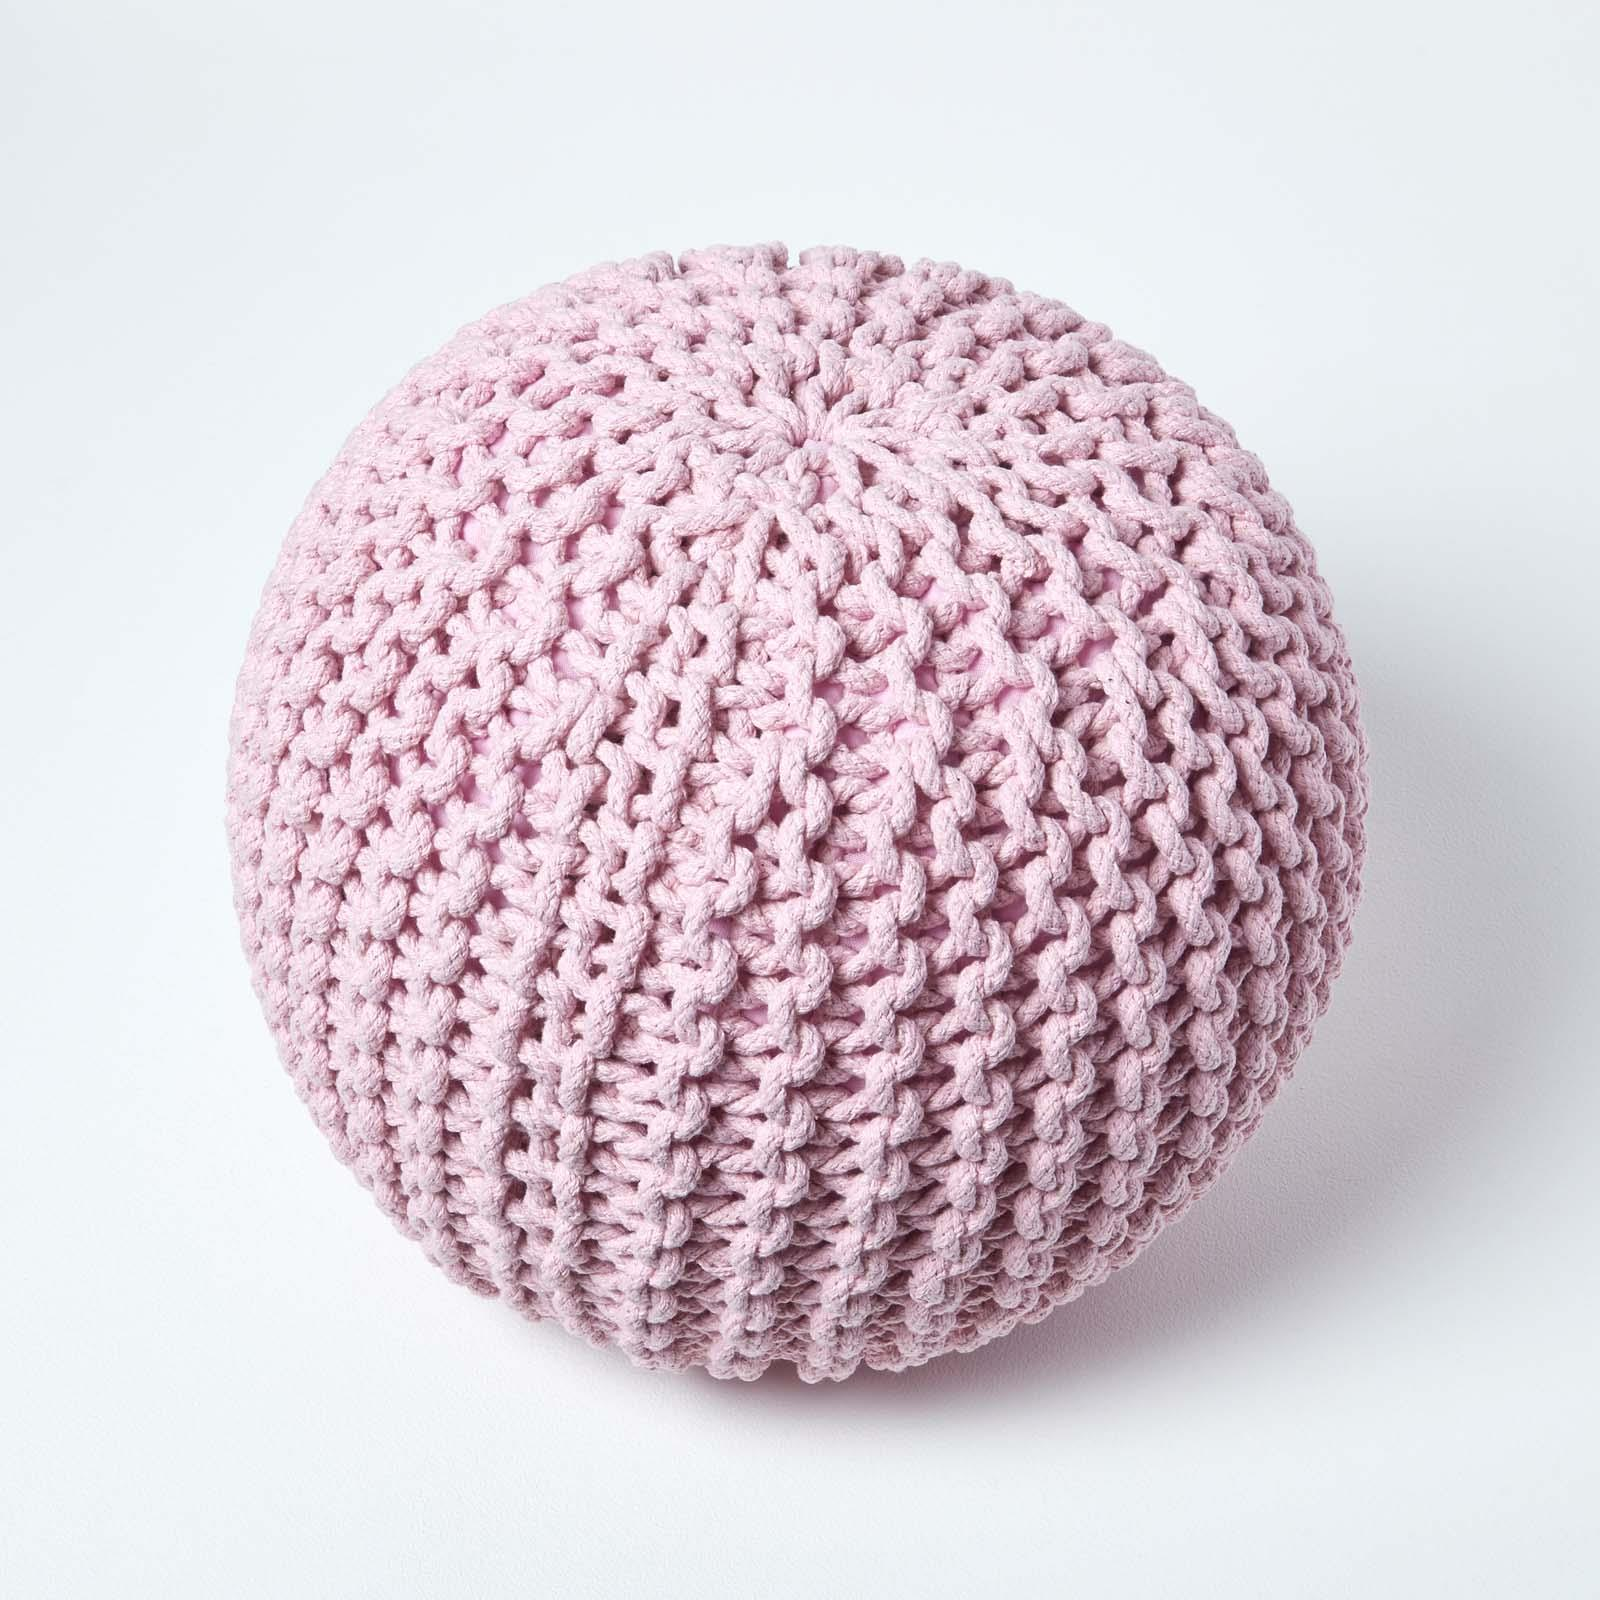 Hand-Knitted-100-Cotton-Pouffes-Round-Sphere-Or-Cube-Square-Chunky-Footstools thumbnail 142